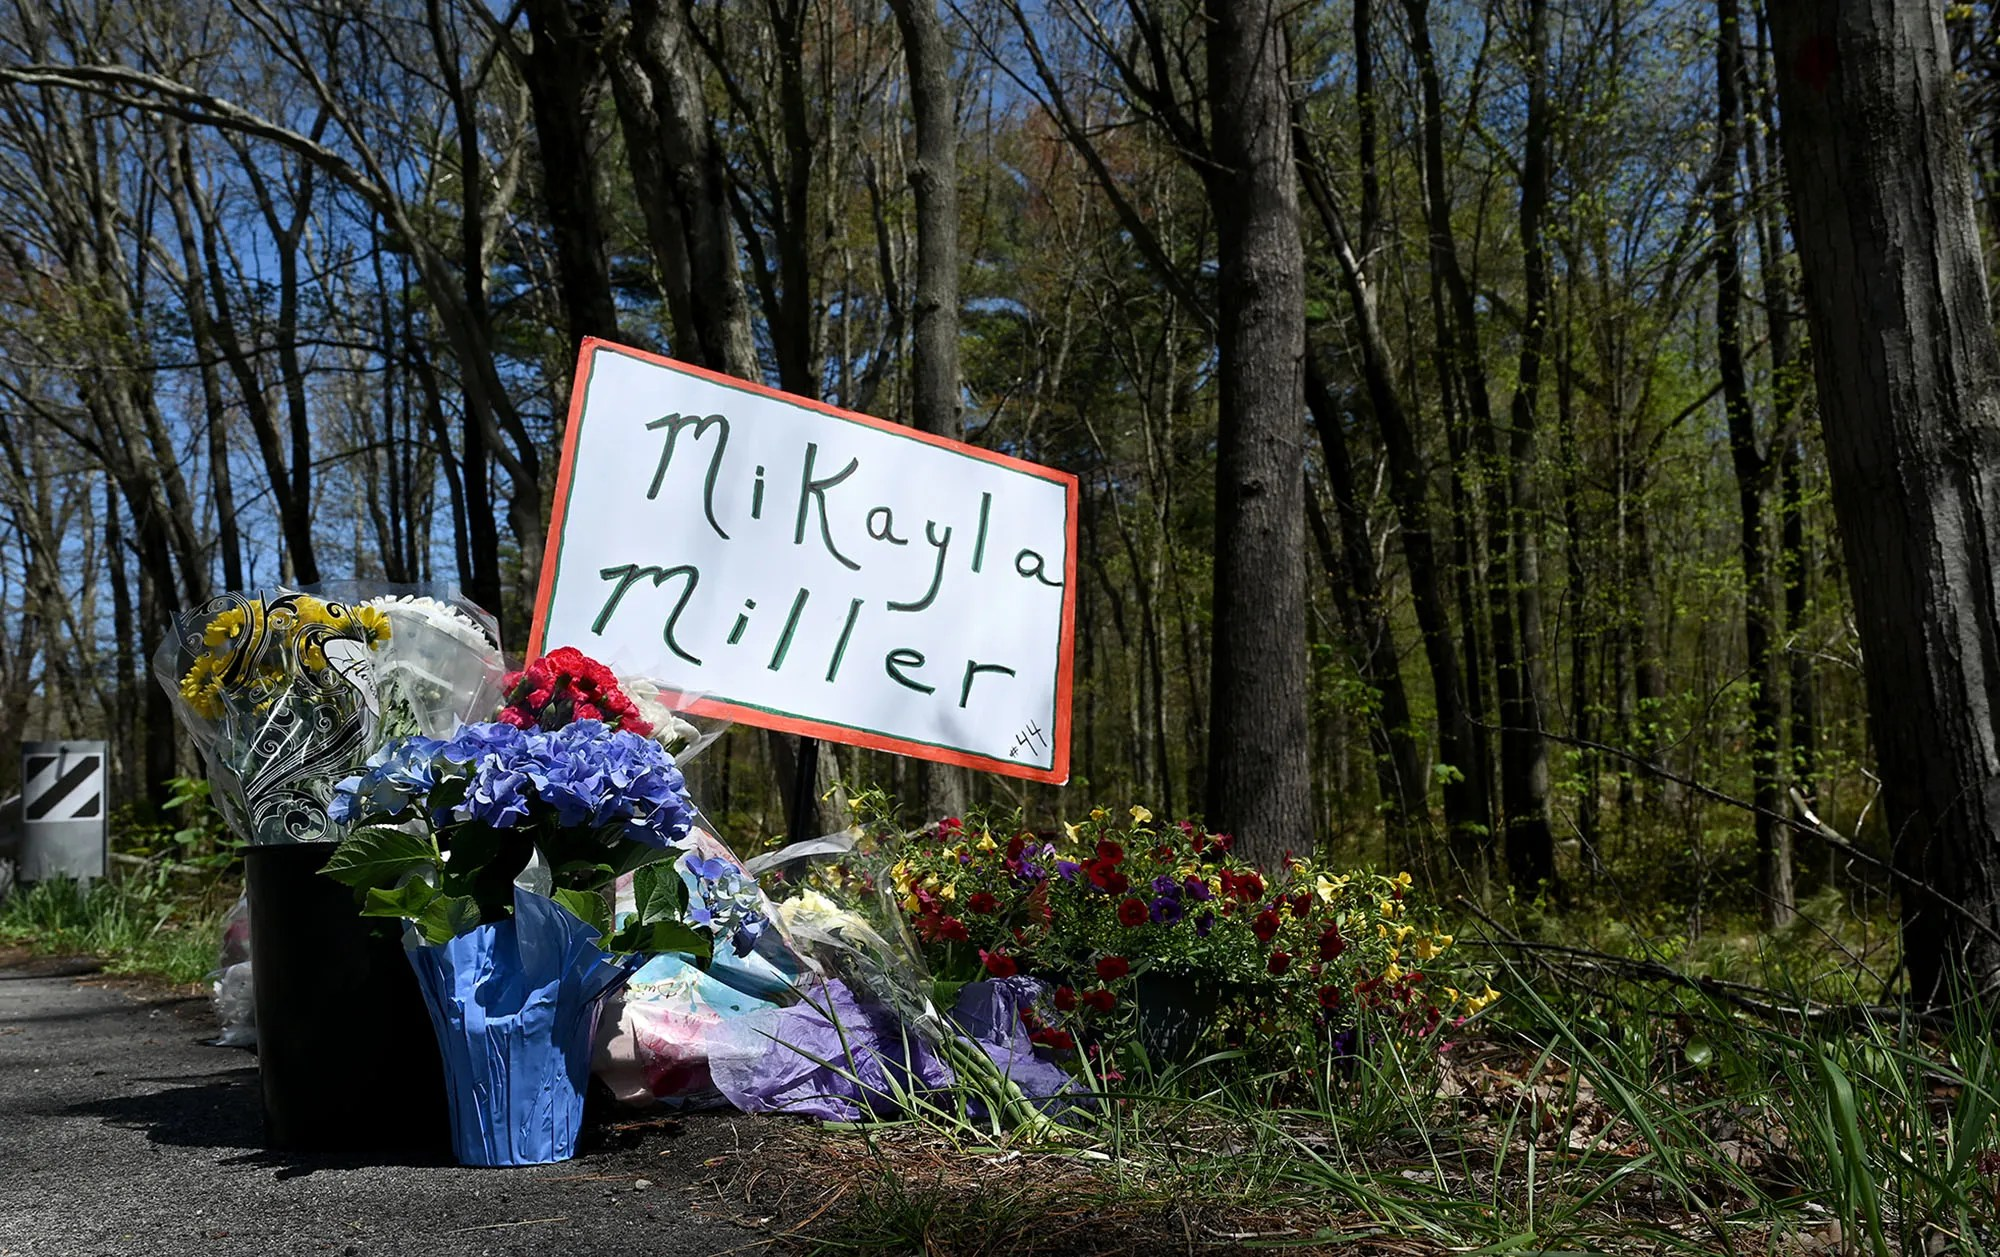 Growing memorial to Mikayla Miller, 16,  on West Main Street in Hopkinton, near a wooded area where she was found dead near her Hopkinton home on April 18, seen before a rally to both honor Miller and to call for answers from authorities on the cause of her death, Thursday, May 6, 2021.